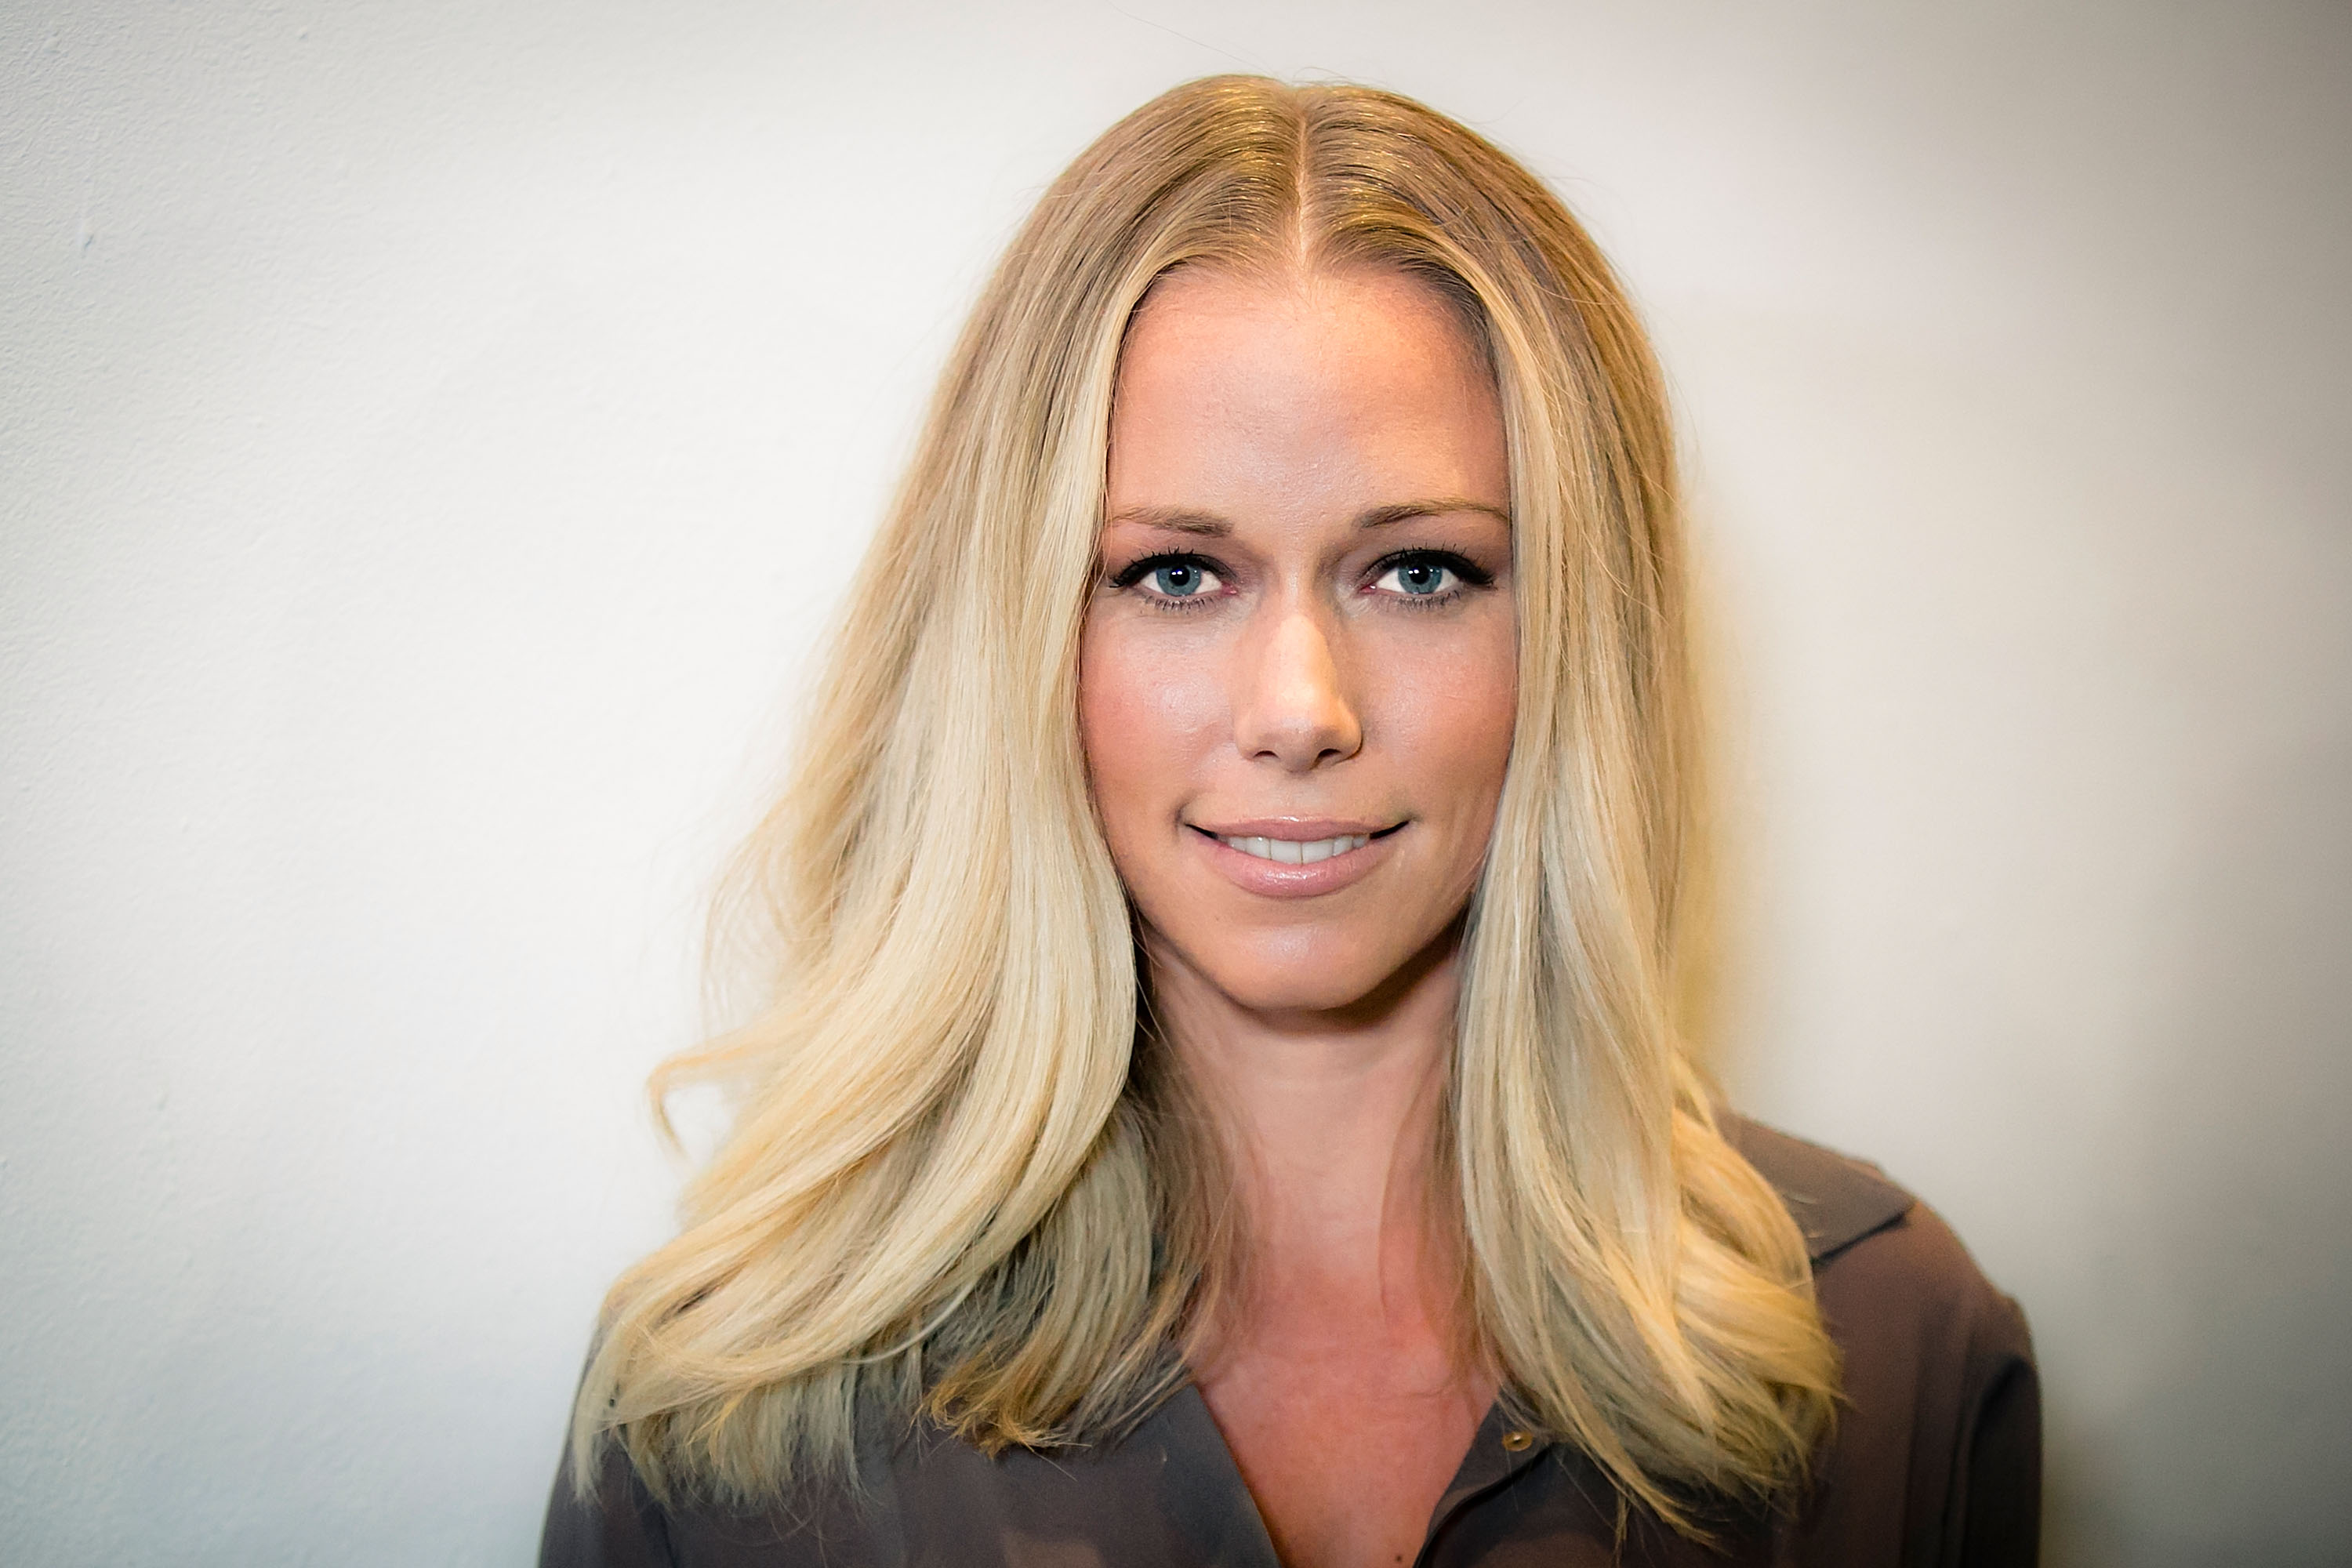 Kendra Wilkinson arrives to OK! Magazine's Pre-Oscar Party In Support Of Global Gift Foundation at Beso on February 25, 2016 in Hollywood, California.